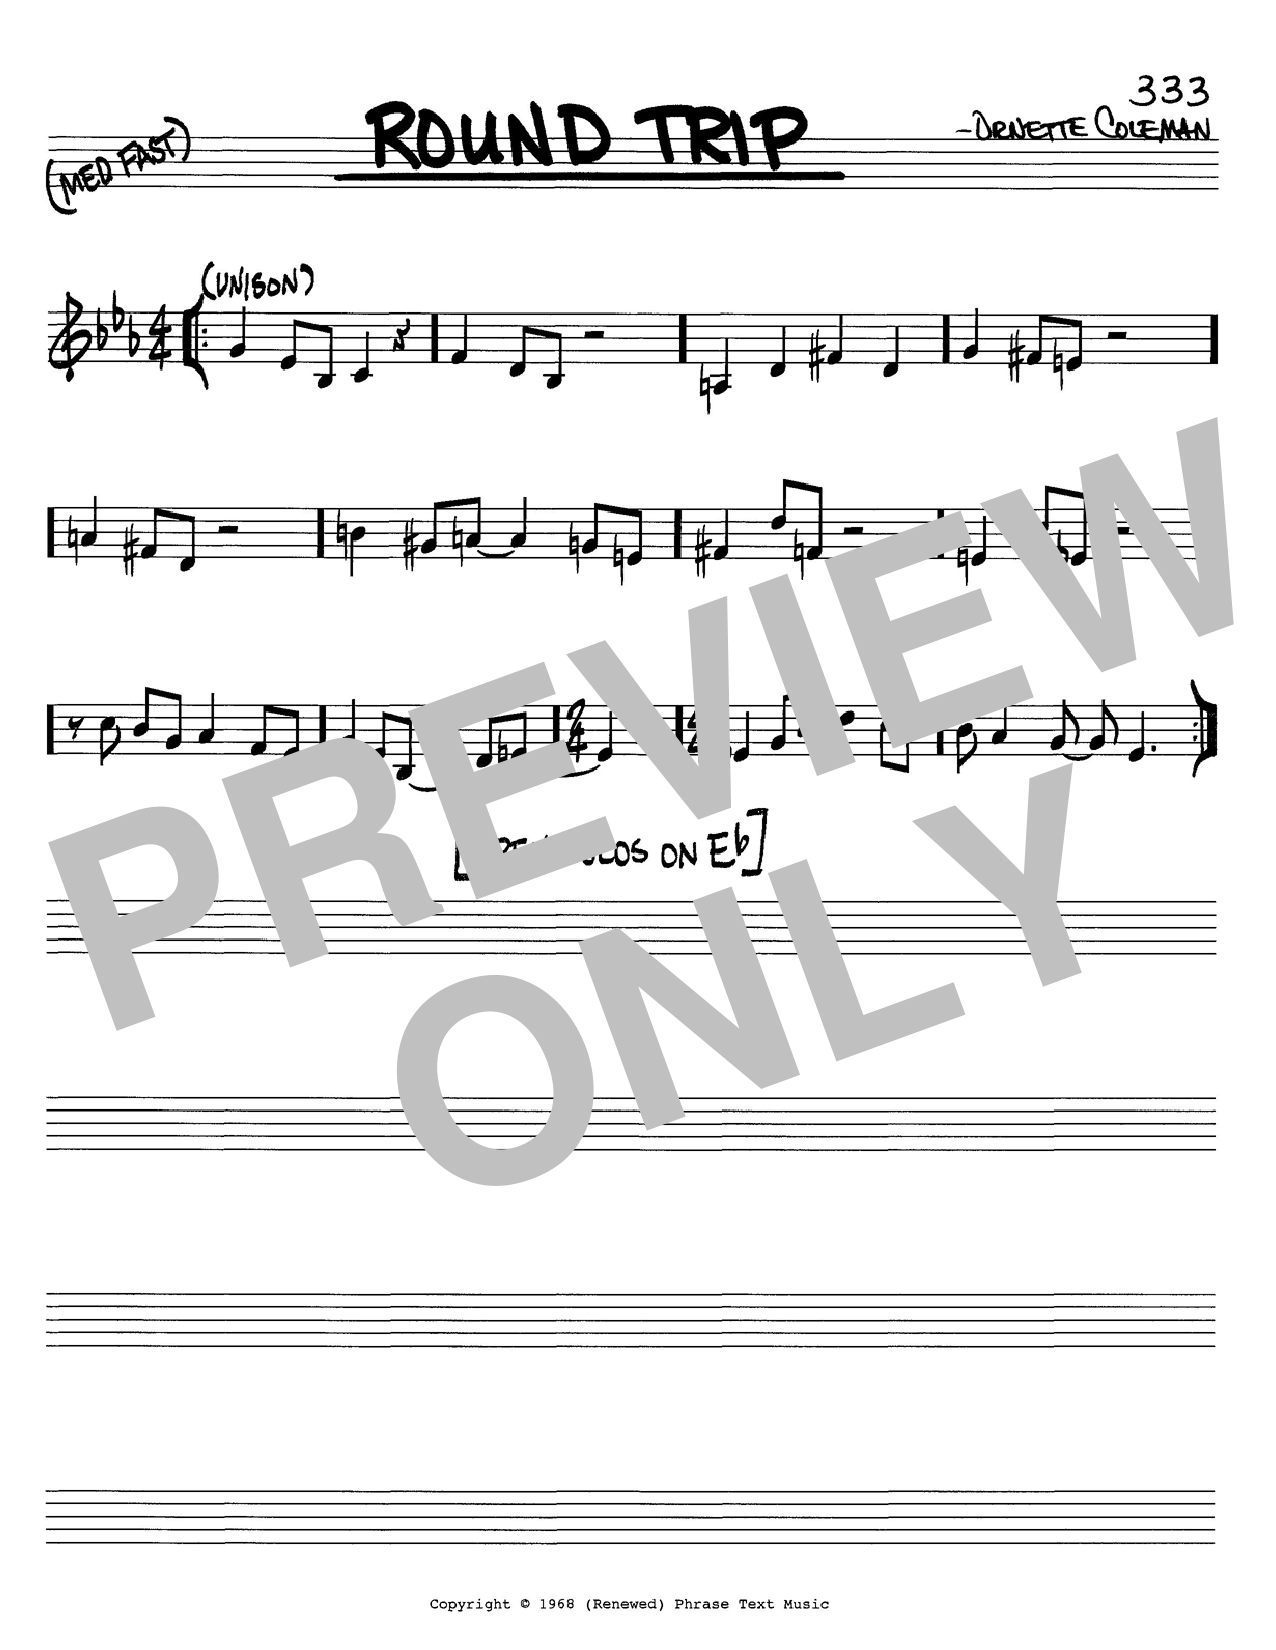 Ornette Coleman Round Trip sheet music notes and chords. Download Printable PDF.